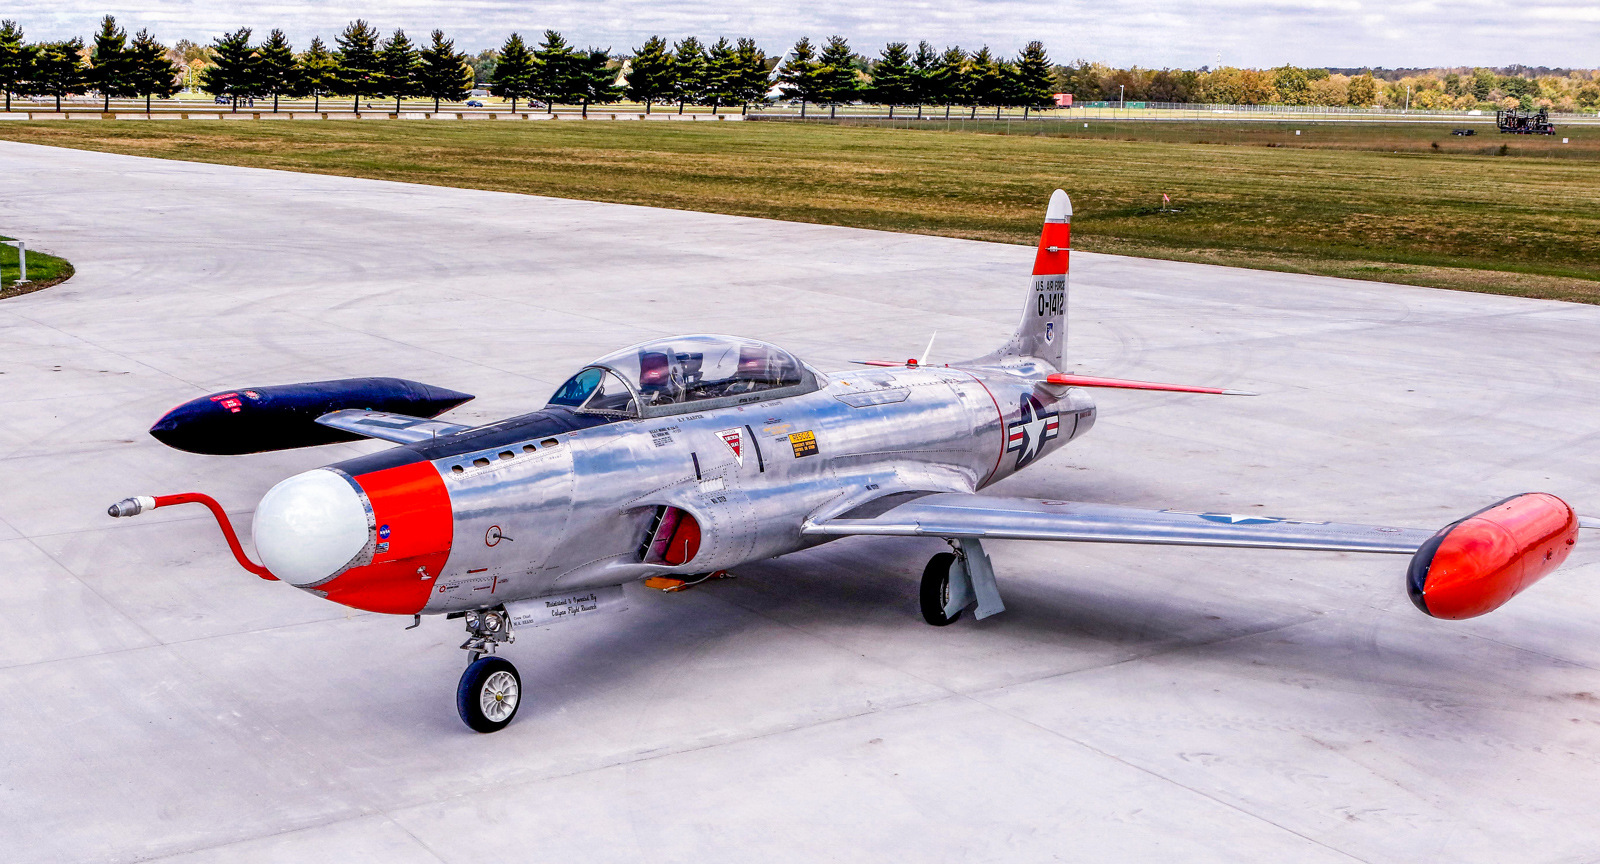 Lockheed NT-33A Shooting Star 51-4120 trials aircraft on Oct. 13, 2015. Modified with the nose from a Lockheed F-94 Starfire, this airframe was at one time the oldest active aircraft in the US inventory when it finally retired in 1997. (U.S. Air Force photo by Don Popp)